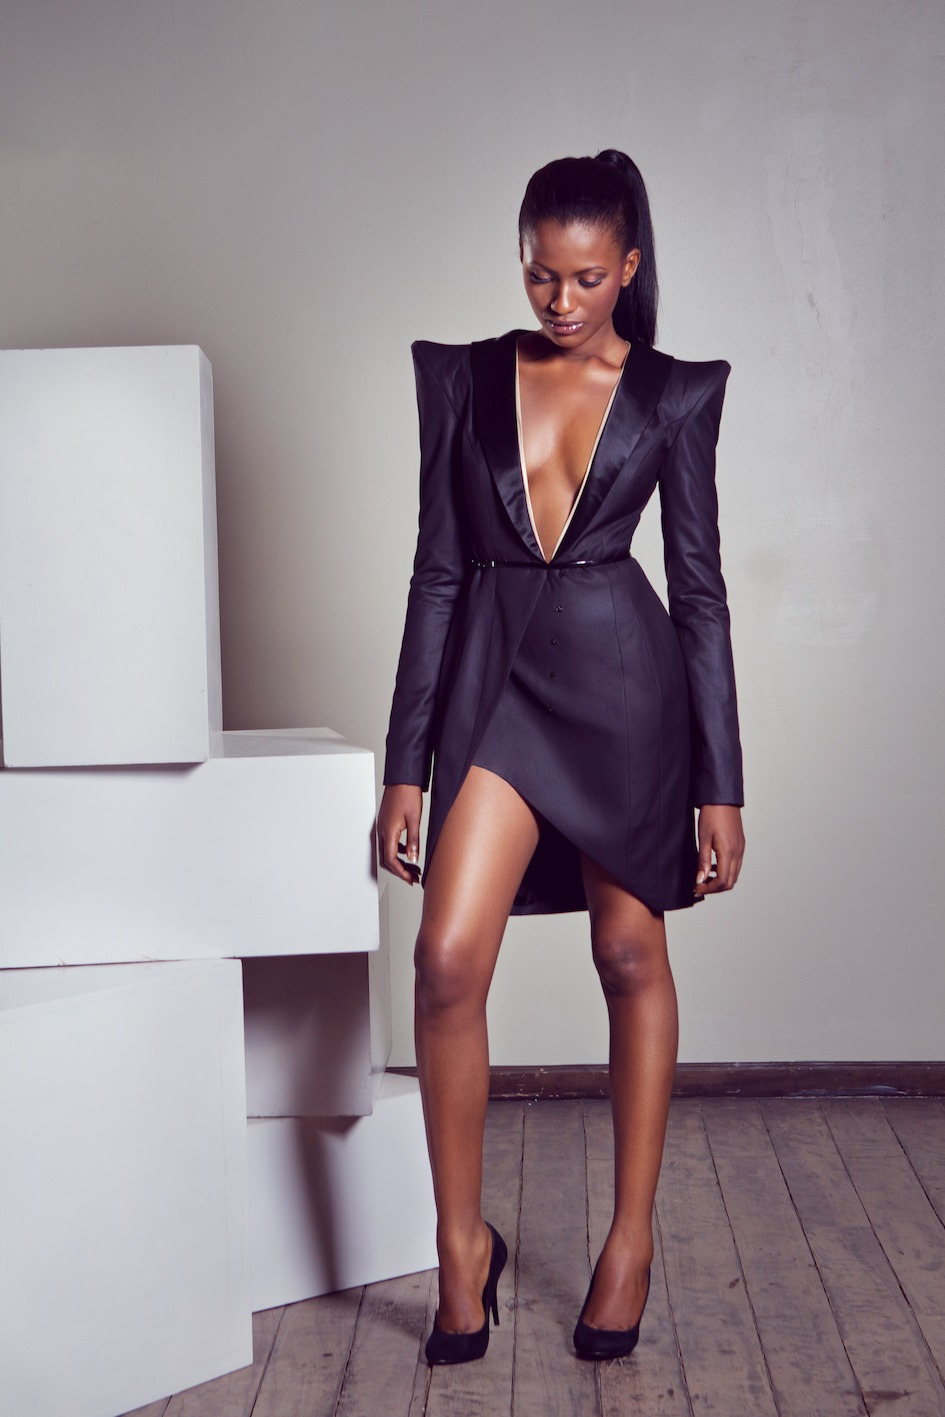 Sassy Style    Sexy & Sophisticated.    via blackandkillingit :     Black Girls Killing It  Shop BGKI NOW              Killin' the game, join Sassy Nation     http://sassynation.tumblr.com     http://www.facebook.com/TheSassyNation     http://twitter.com/#!/SassyNation